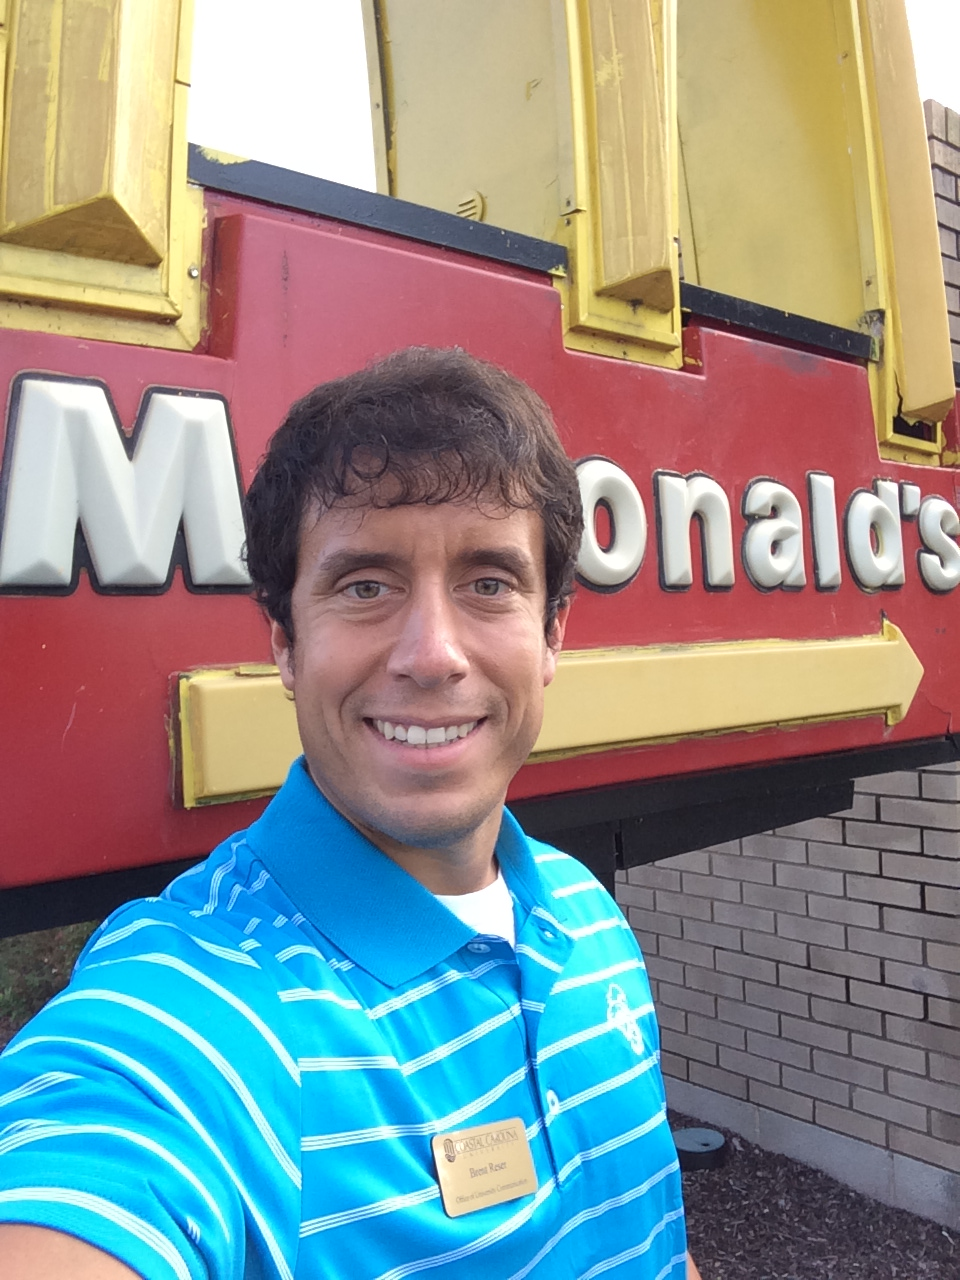 I have five ideas to help McDonalds. And yes, only I would go out of my way on the drive home to find a McDonalds and take a selfie at the sign for a blog post.